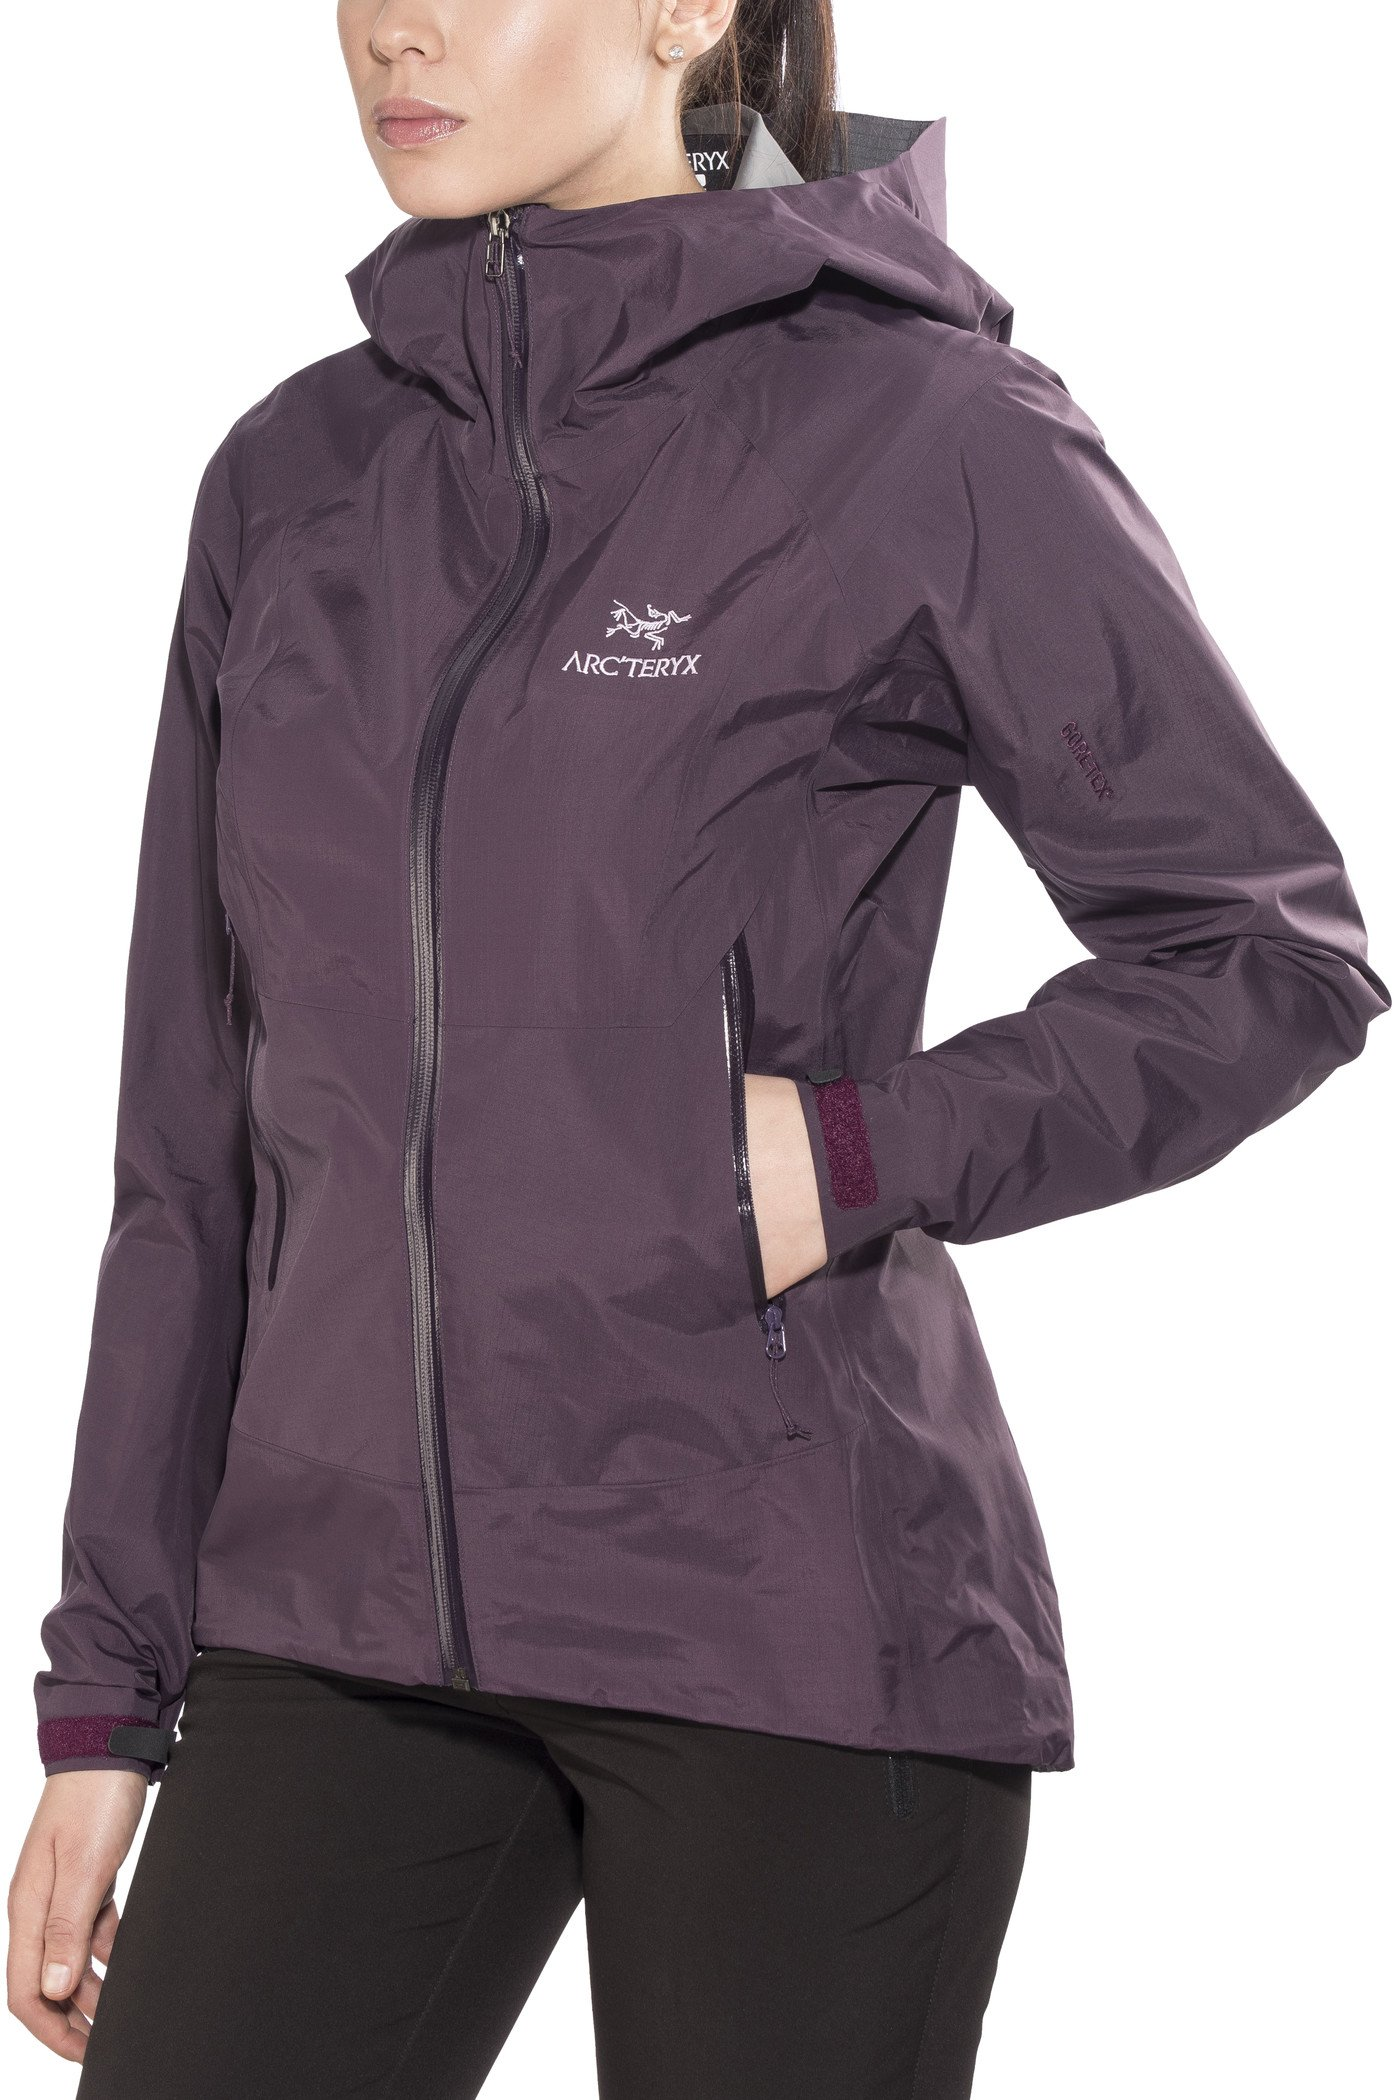 ARC'TERYX Beta SL Jacket Women's (Purple Reign, Large)